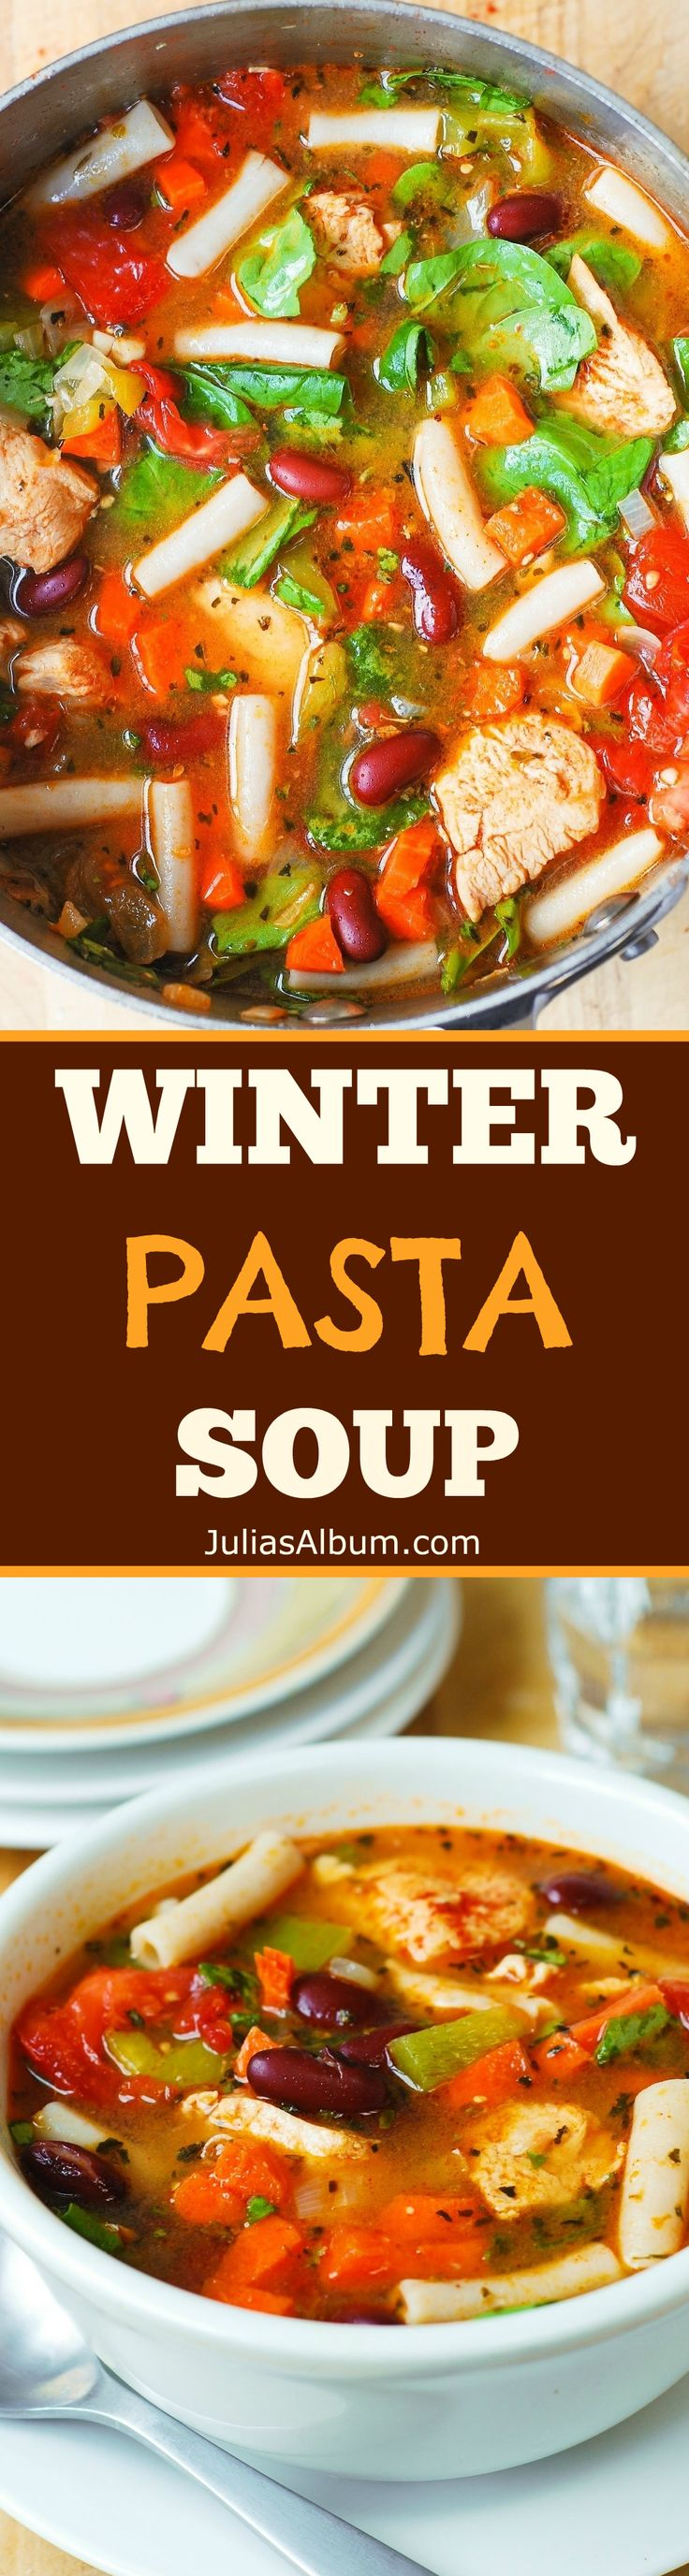 Winter pasta soup with chicken and vegetables: gluten free, healthy, delicious, easy-to-make! Spinach, bell pepper, carrots, tomatoes, and beans.